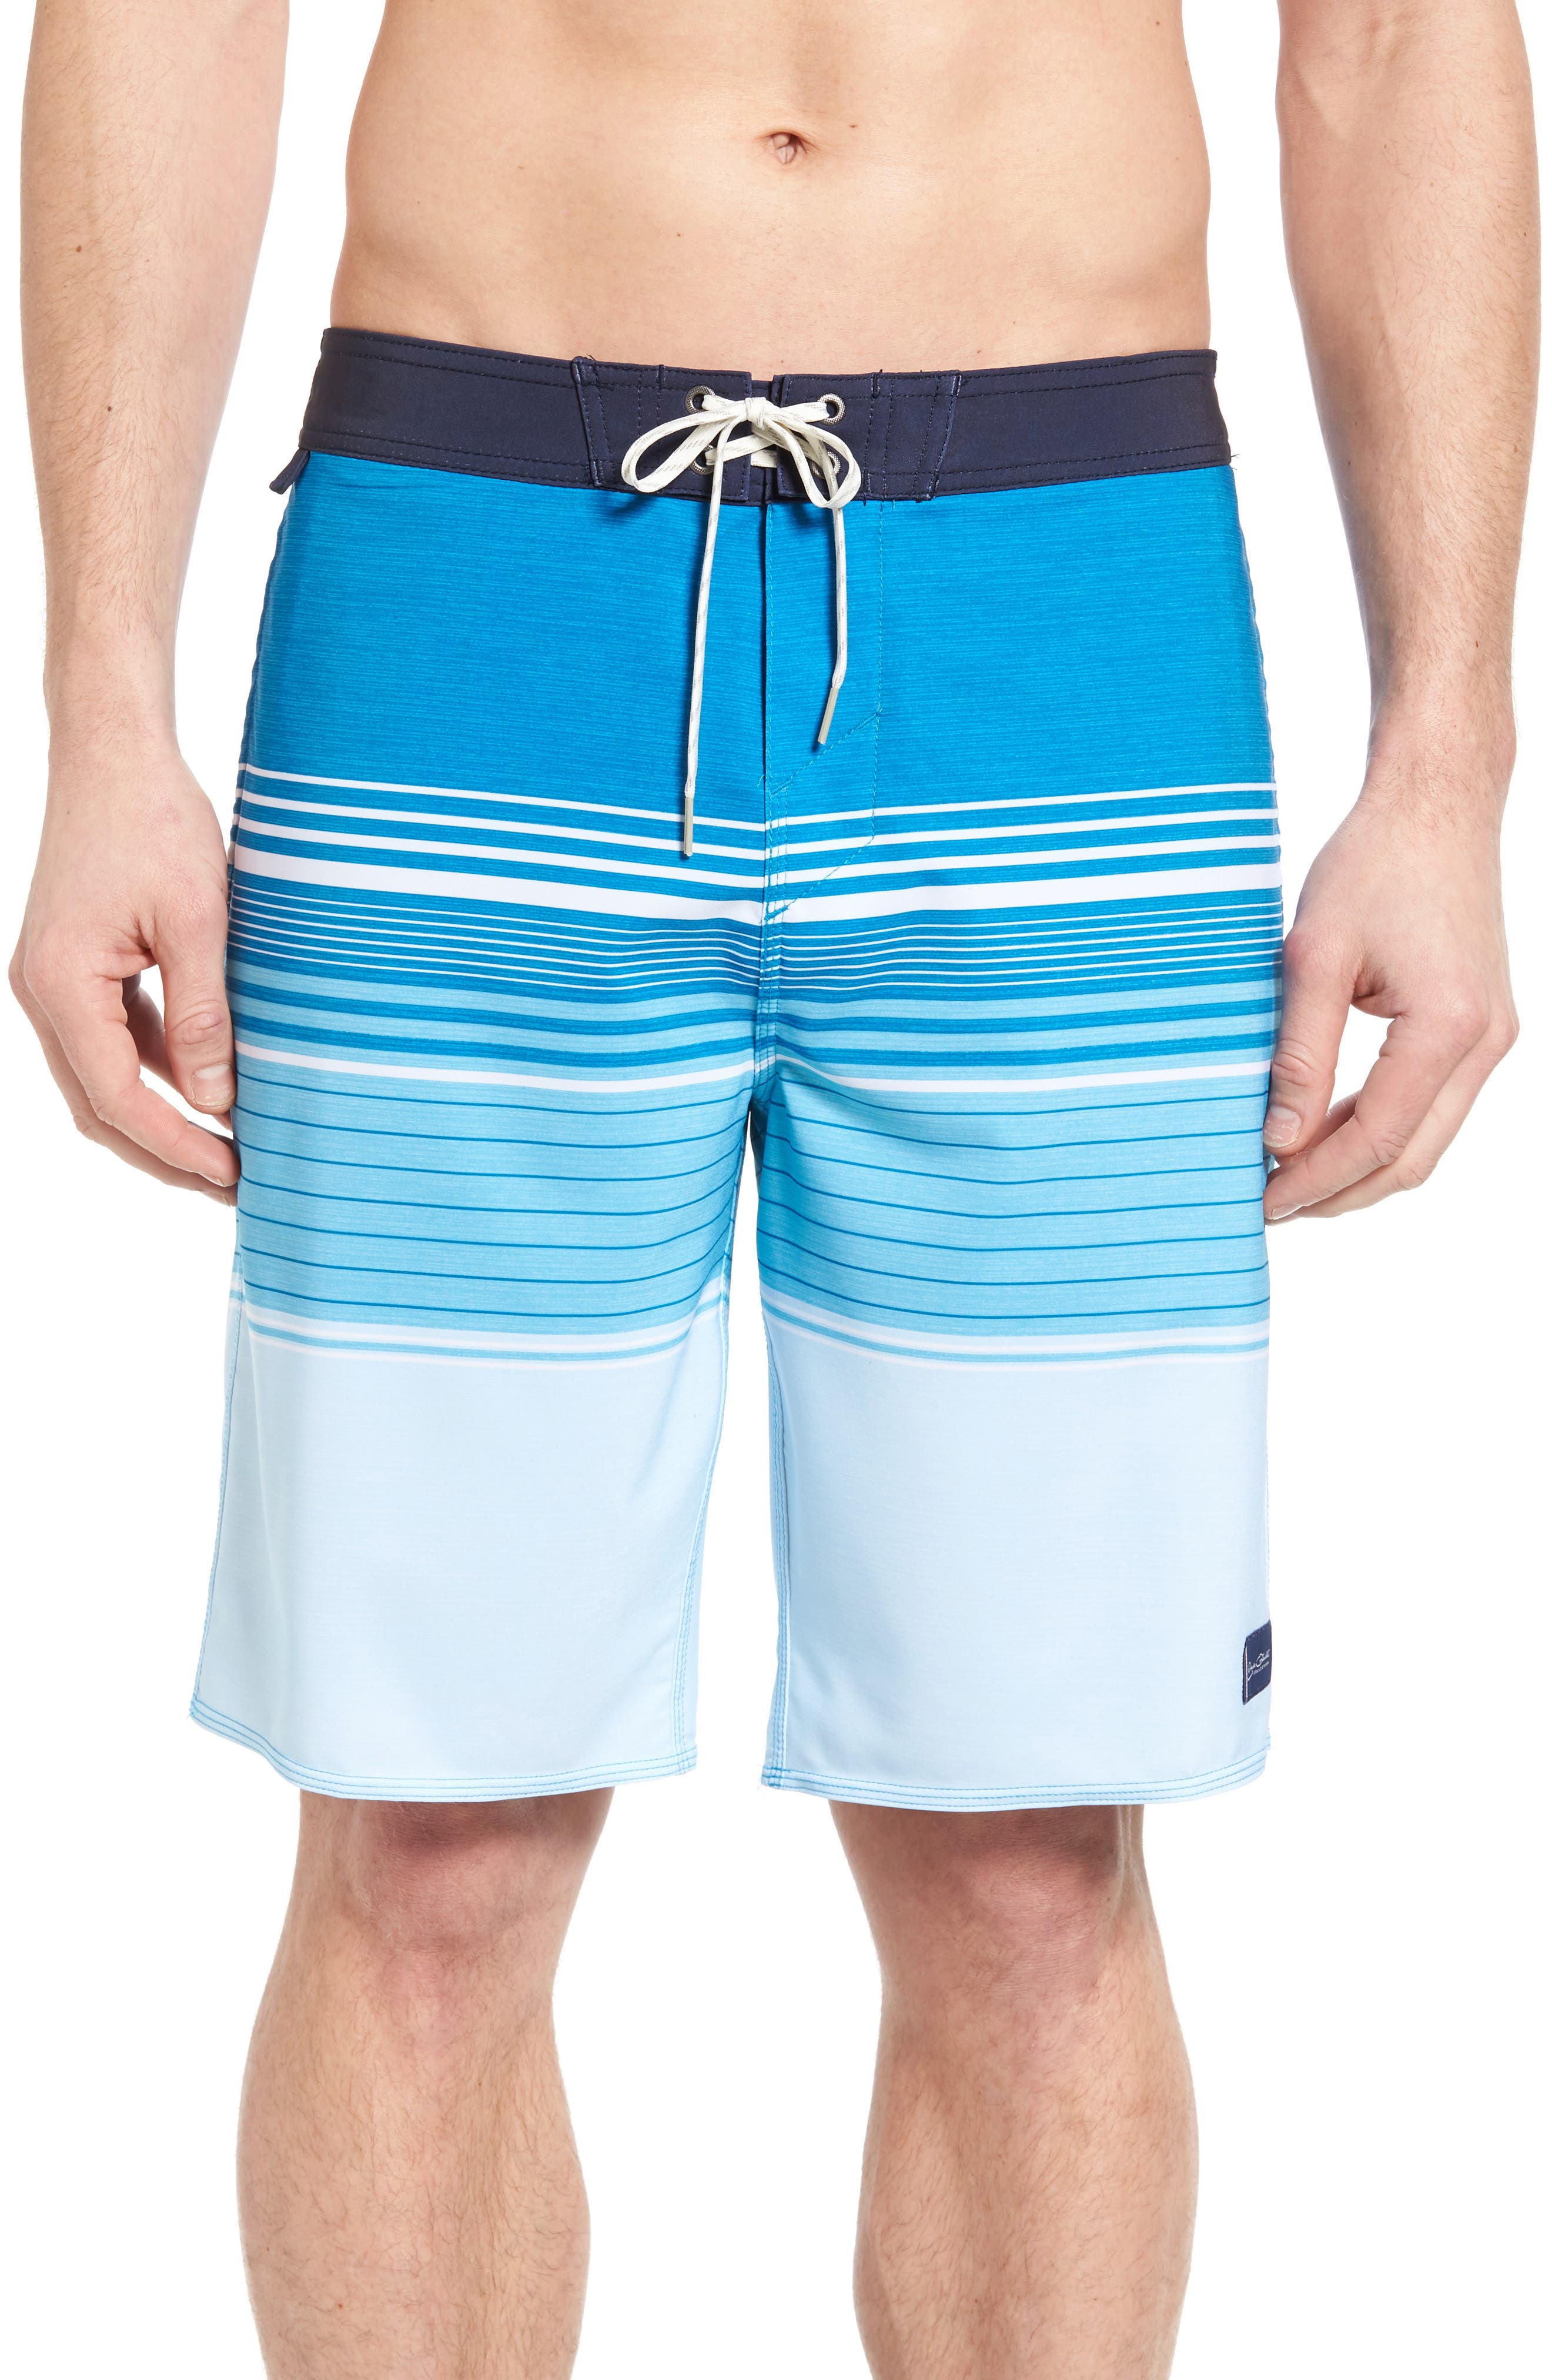 Alternate Image 1 Selected - Jack O'Neill Frontiers Stretch Board Shorts